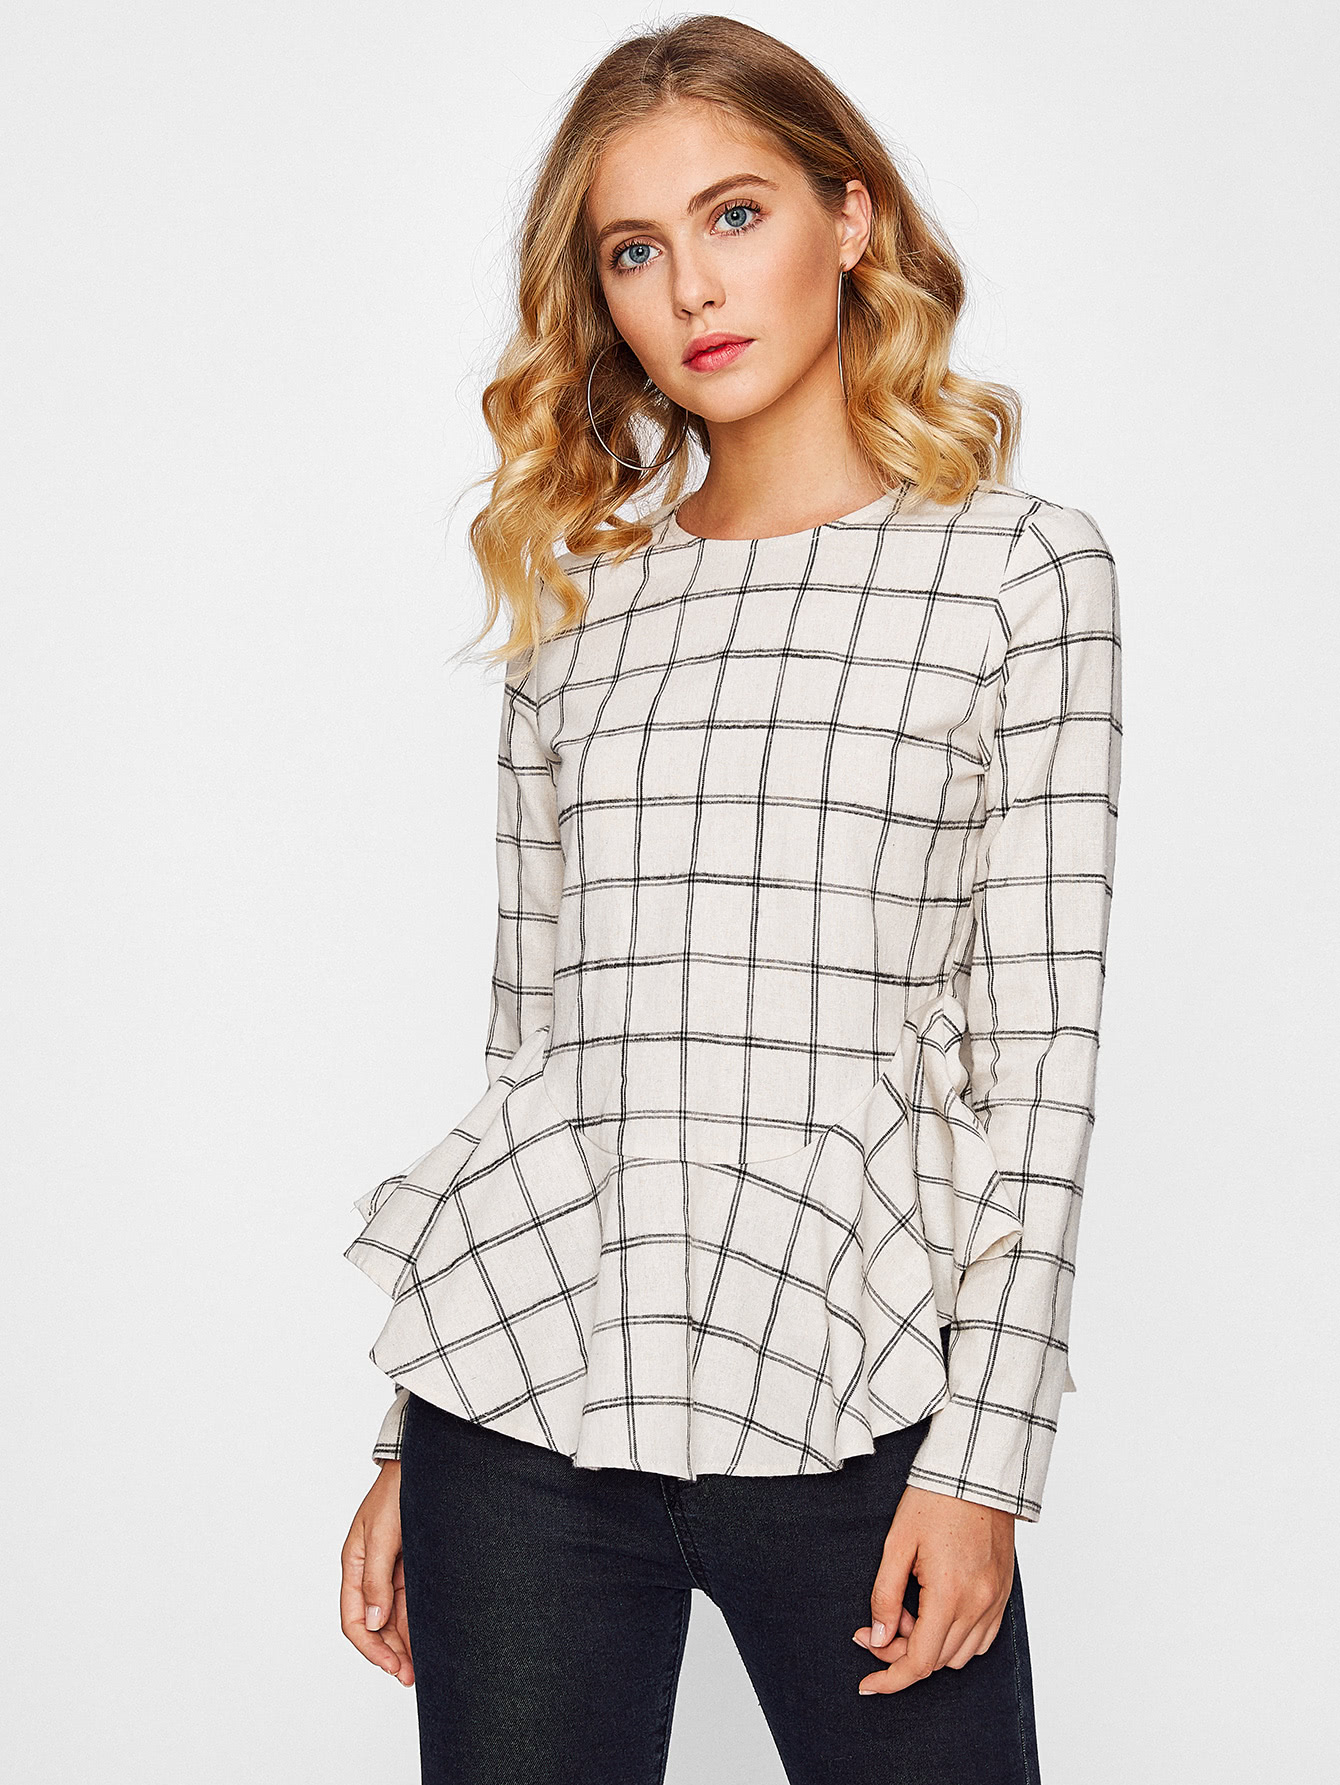 Ruffle Curved Hem Grid Blouse